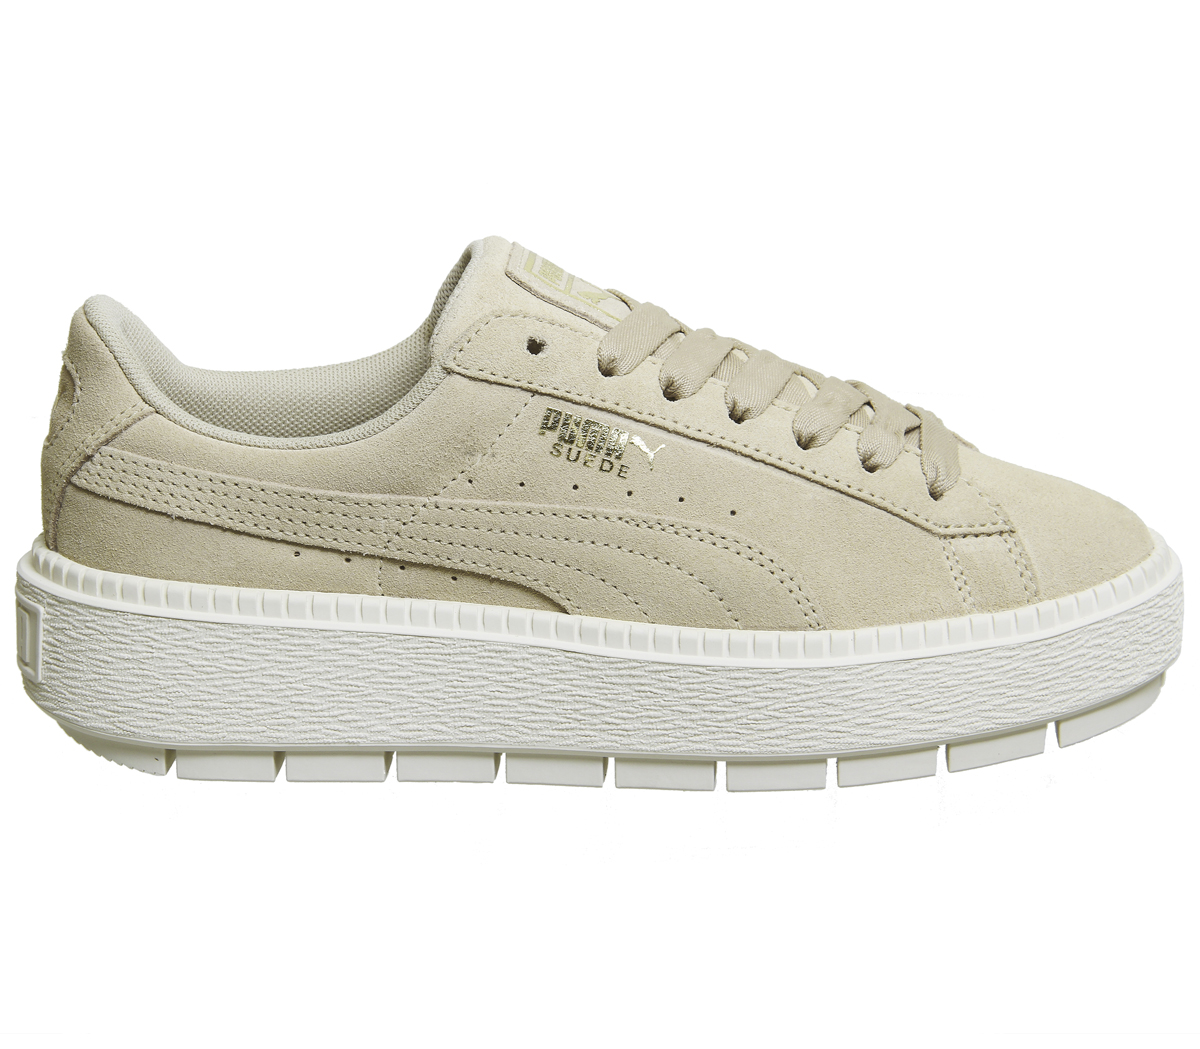 b3dcb7a83c Sentinel Womens Puma Suede Platform Trace Trainers SAFARI MARSHMALLOW  Trainers Shoes